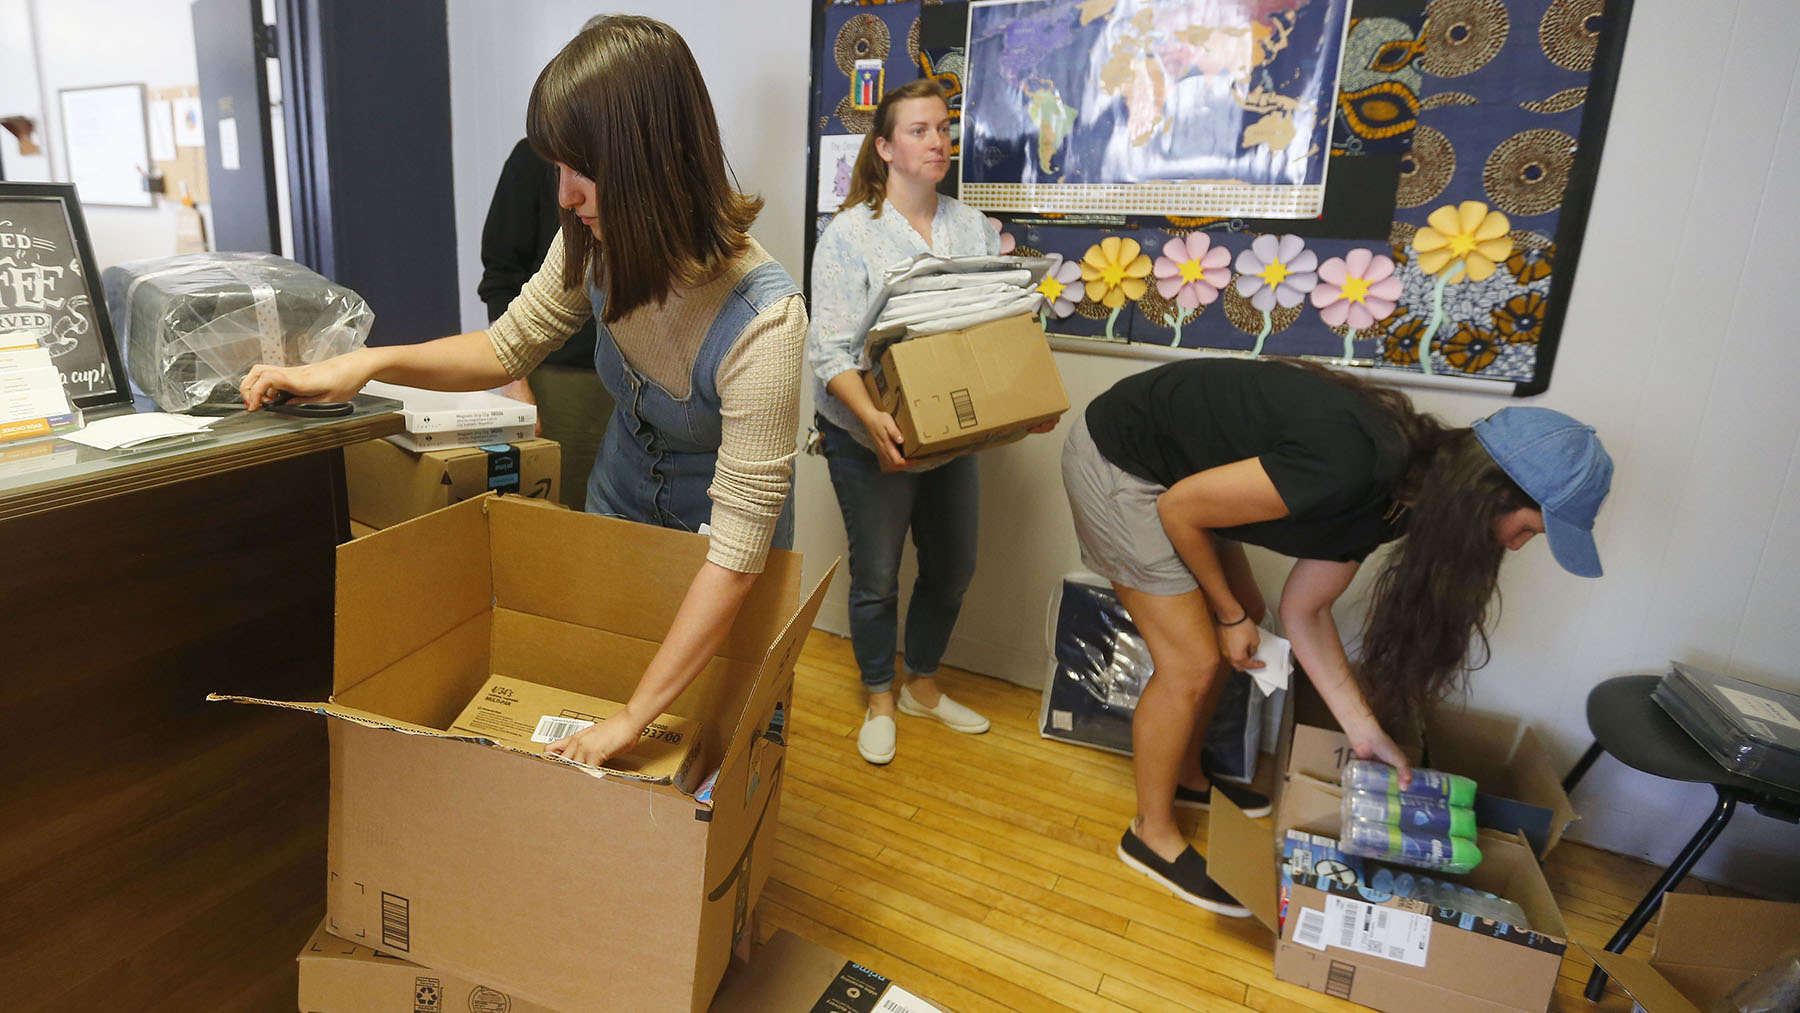 Vive Shelter staff unpack boxes of supplies at the Buffalo shelter, operated by local health center, Jericho Road, which has stepped up to provide services, including for health needs. (Mark Mulville/Buffalo News)